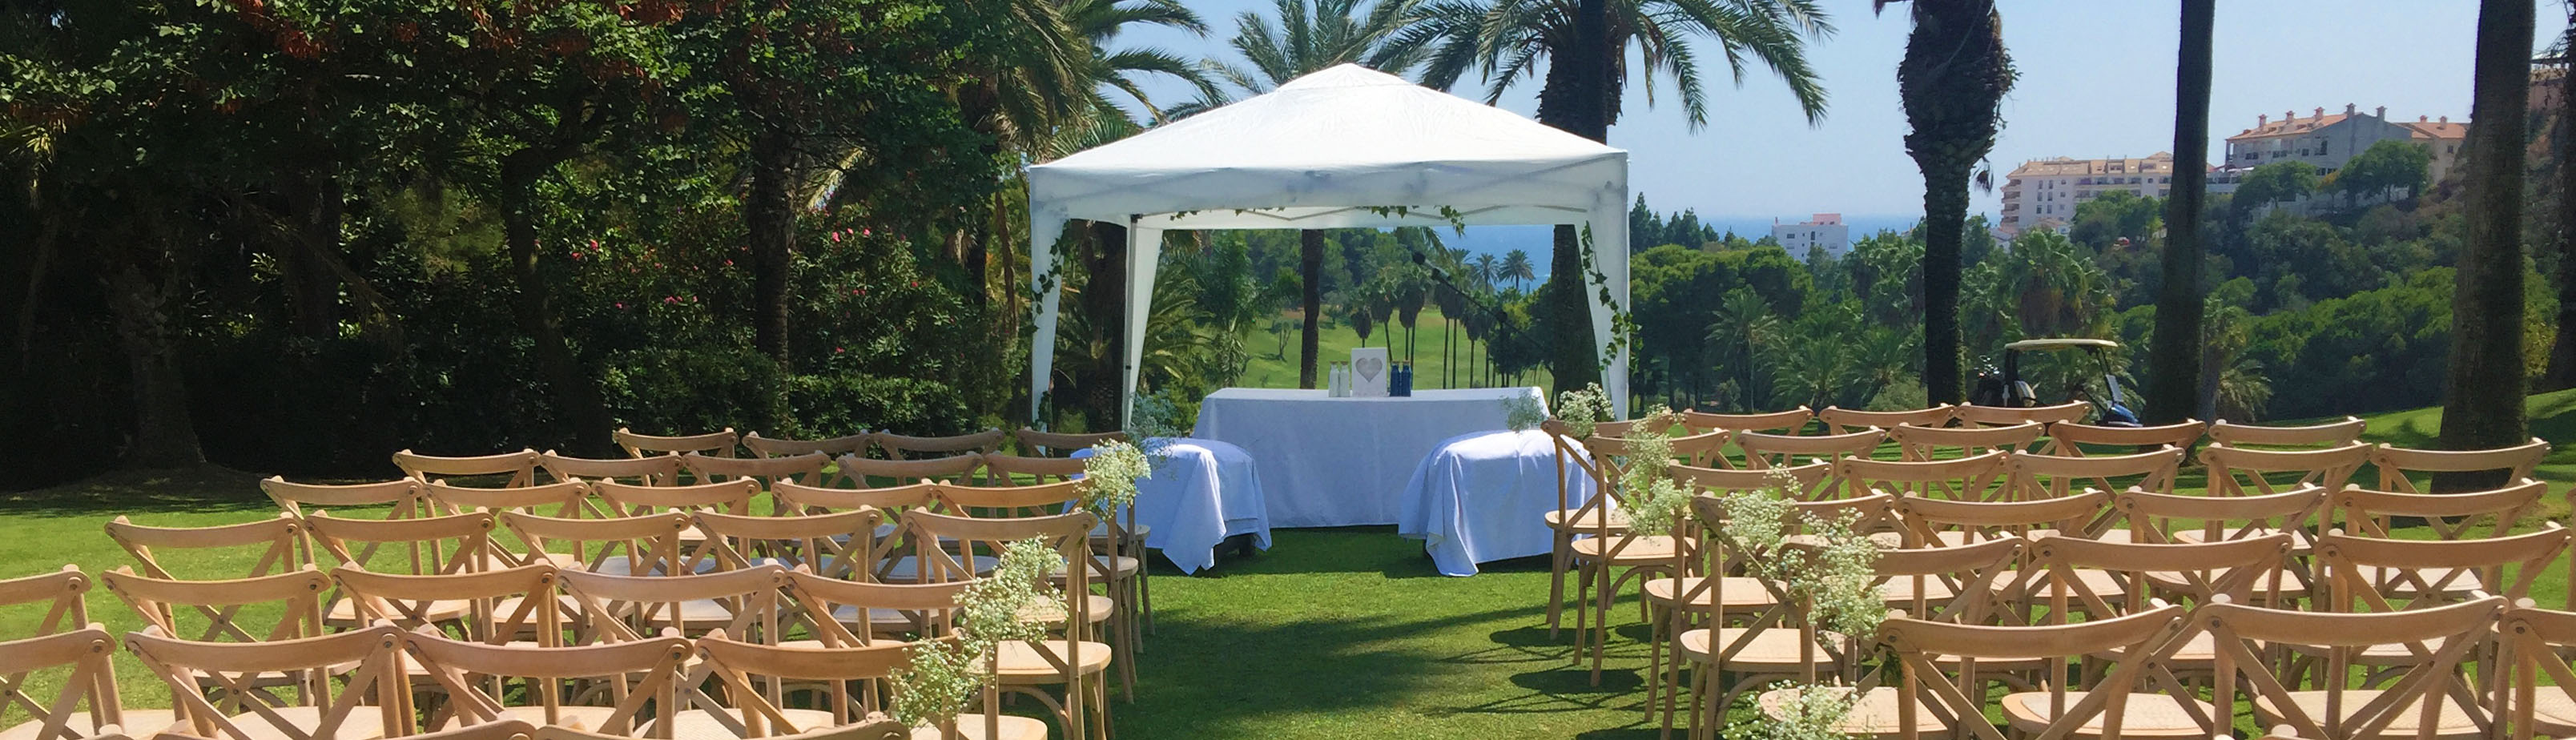 decoracion eventos torrequebrada golf